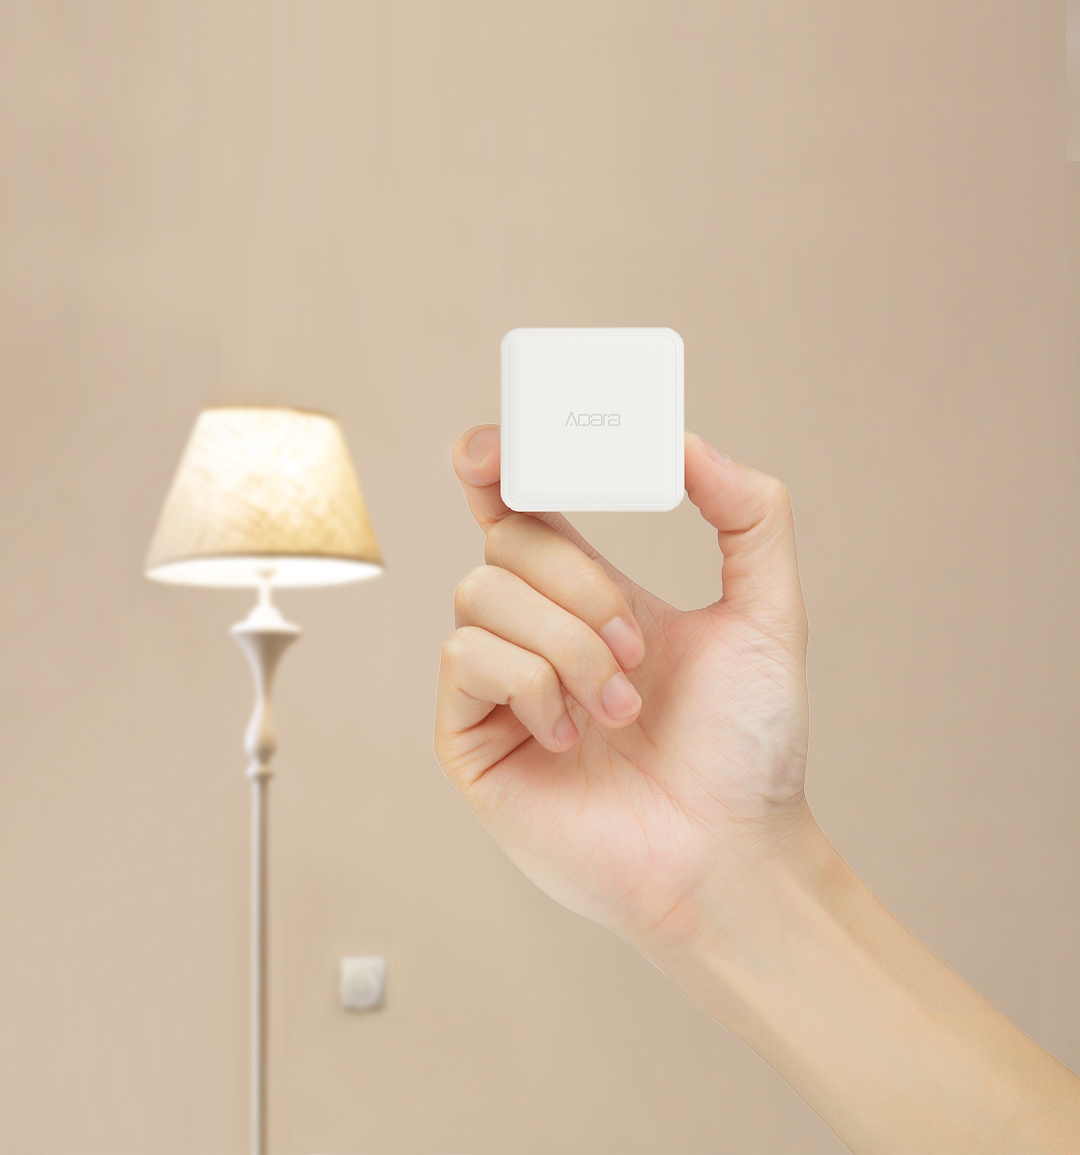 Aqara LED Light Bulb Works with More Smart Devices to Enrich Your Daily Life